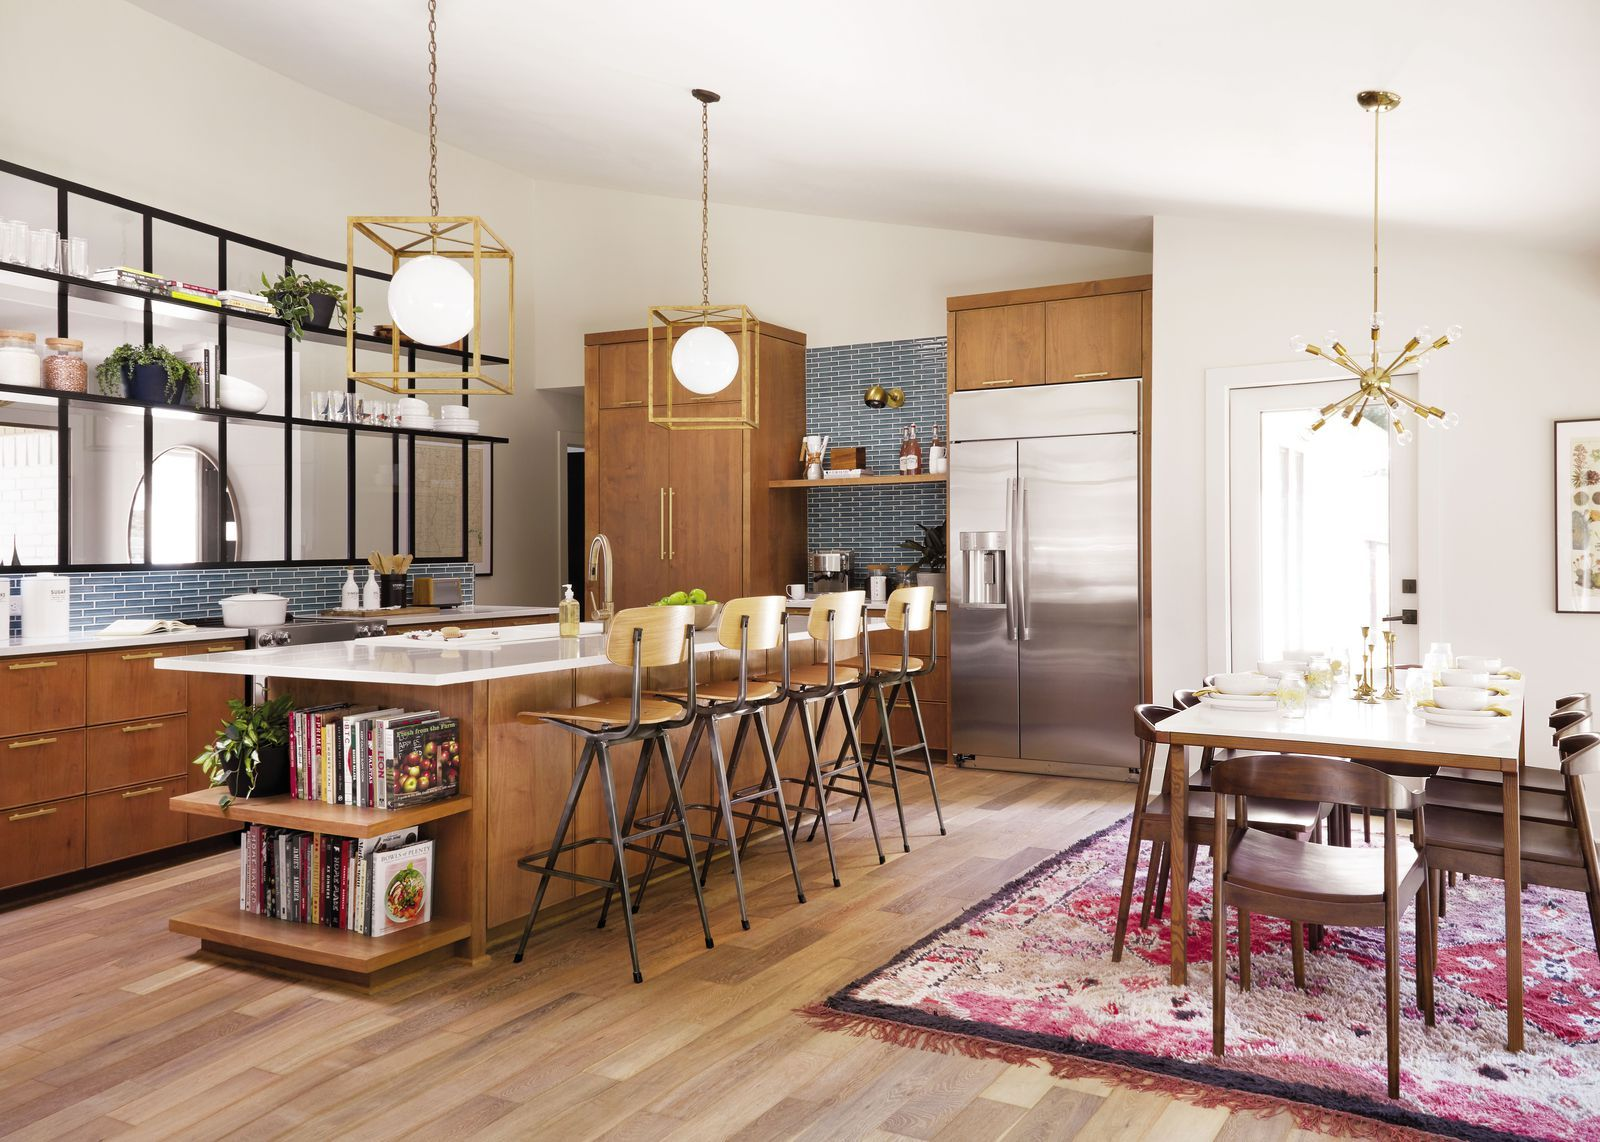 joanna gaines top 6 decorating tips of all time home decor kitchen joanna gaines design home on kitchen layout ideas with island joanna gaines id=70057